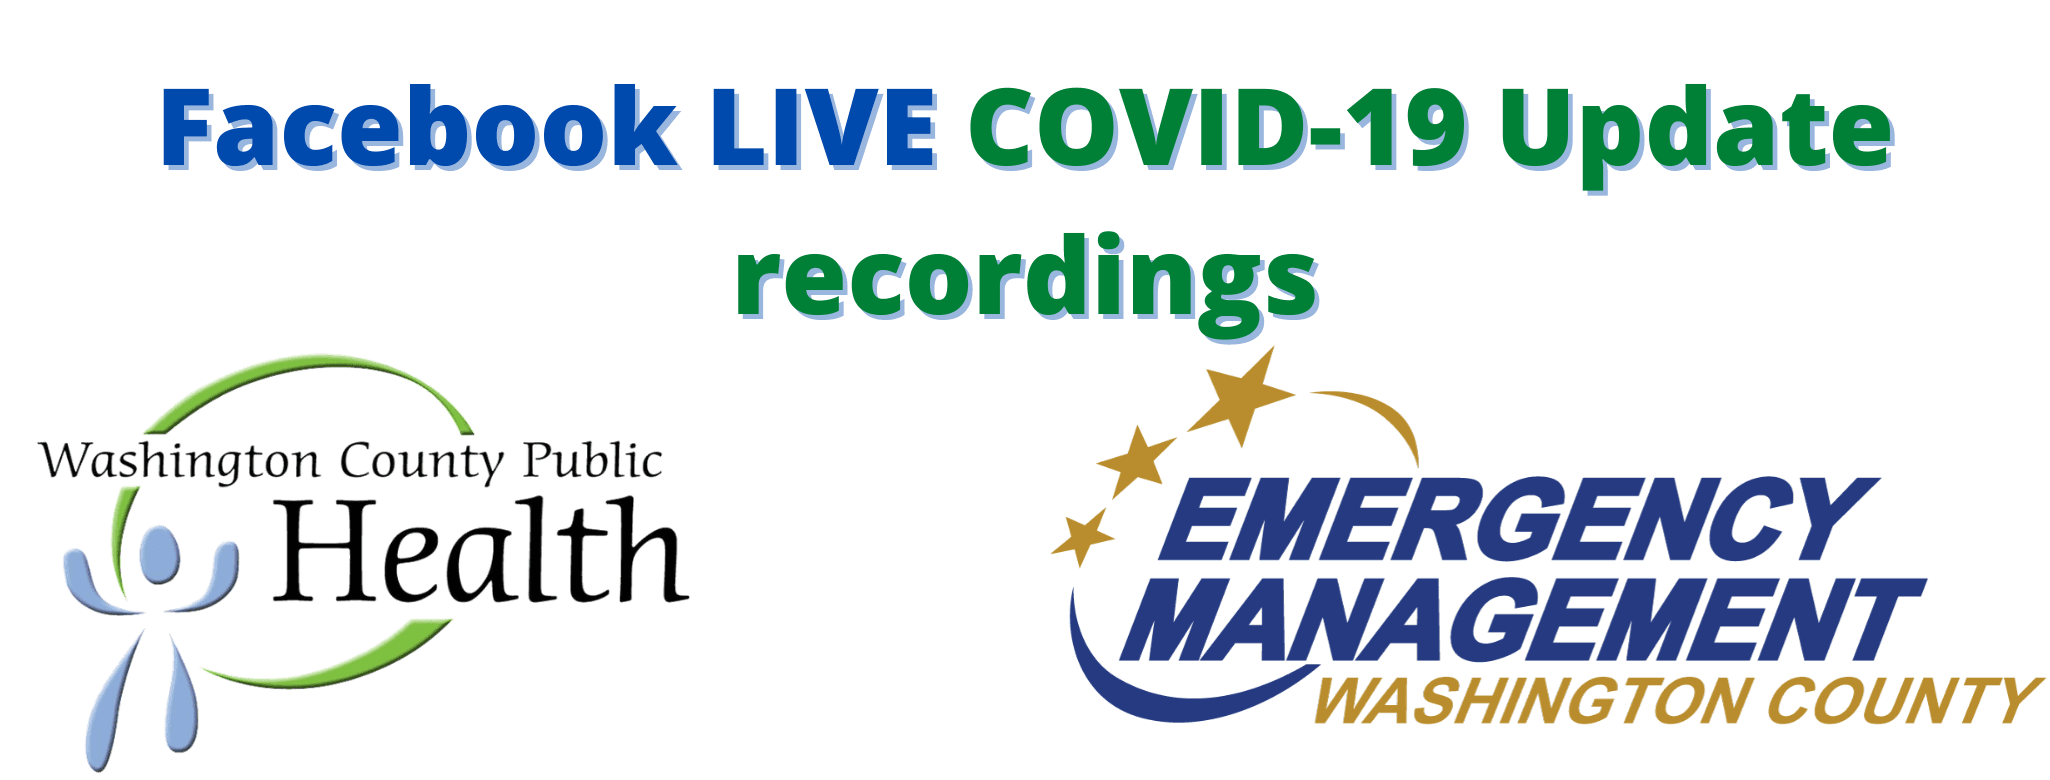 Facebook LIVE COVID-19 Update recordings